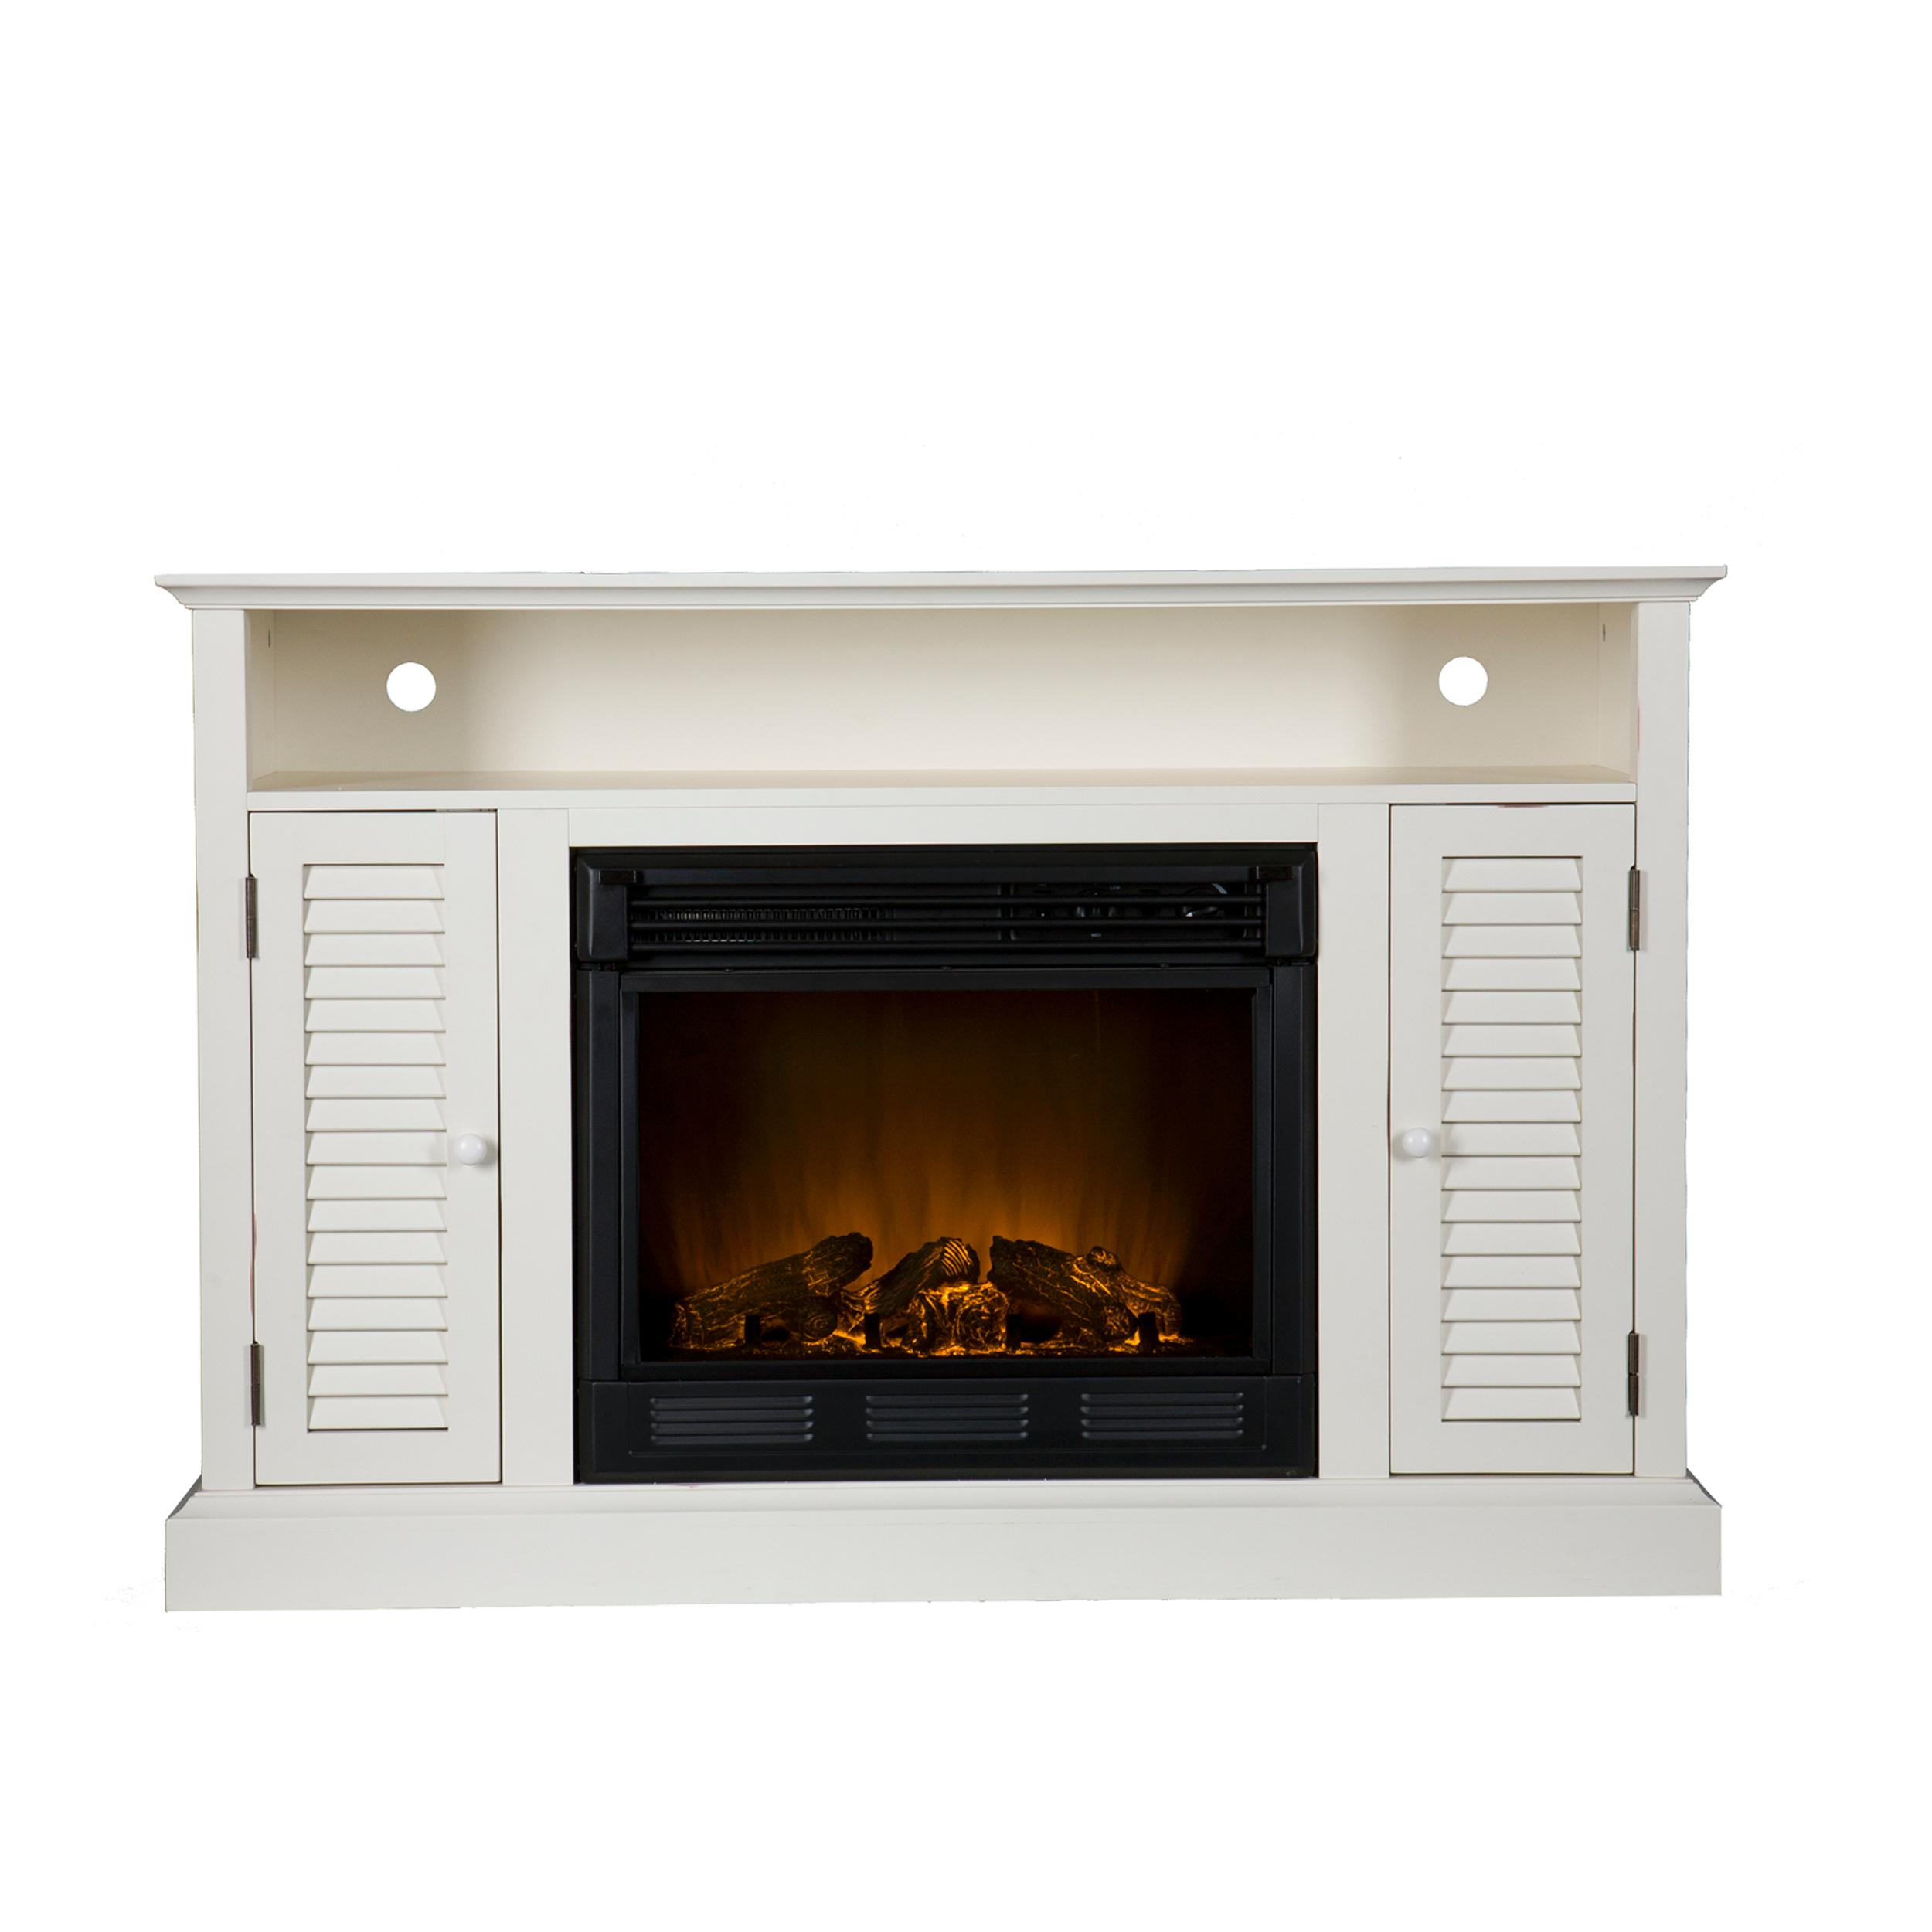 Venice Wall Hanging Electric Fireplace With Digital Led Display